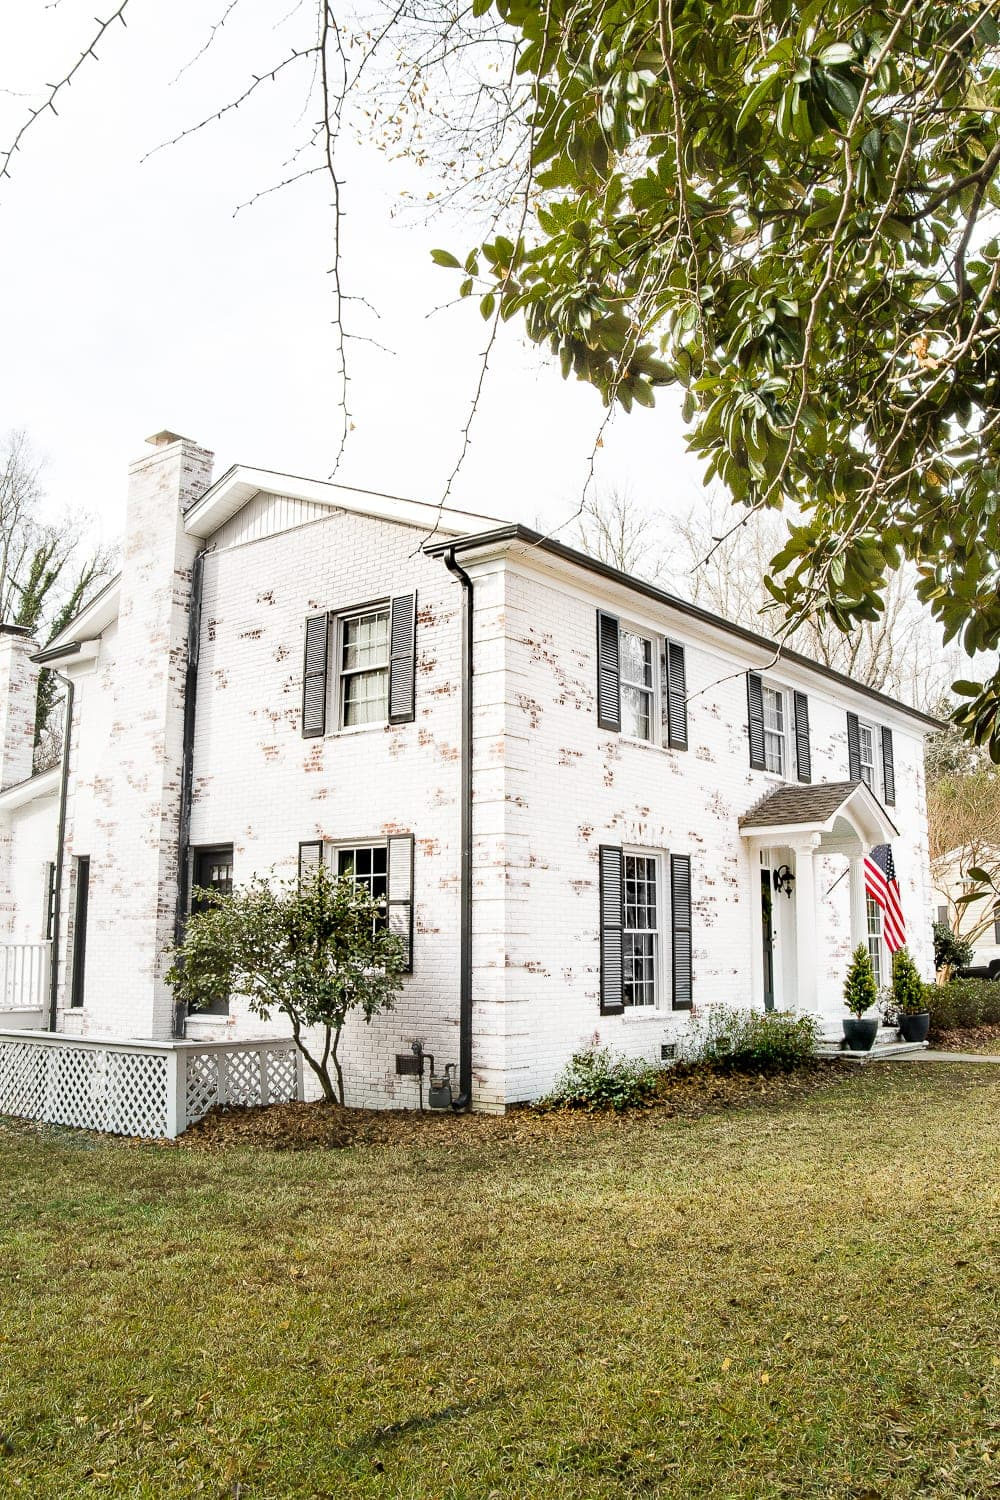 Limewashed Brick Exterior Makeover Reveal | blesserhouse.com - A brick fixer upper colonial house gets a limewashed brick exterior makeover using Romabio Classico Limewash in Bianco White. #limewashedbrick #exteriormakeover #curbappeal #exteriorpaint